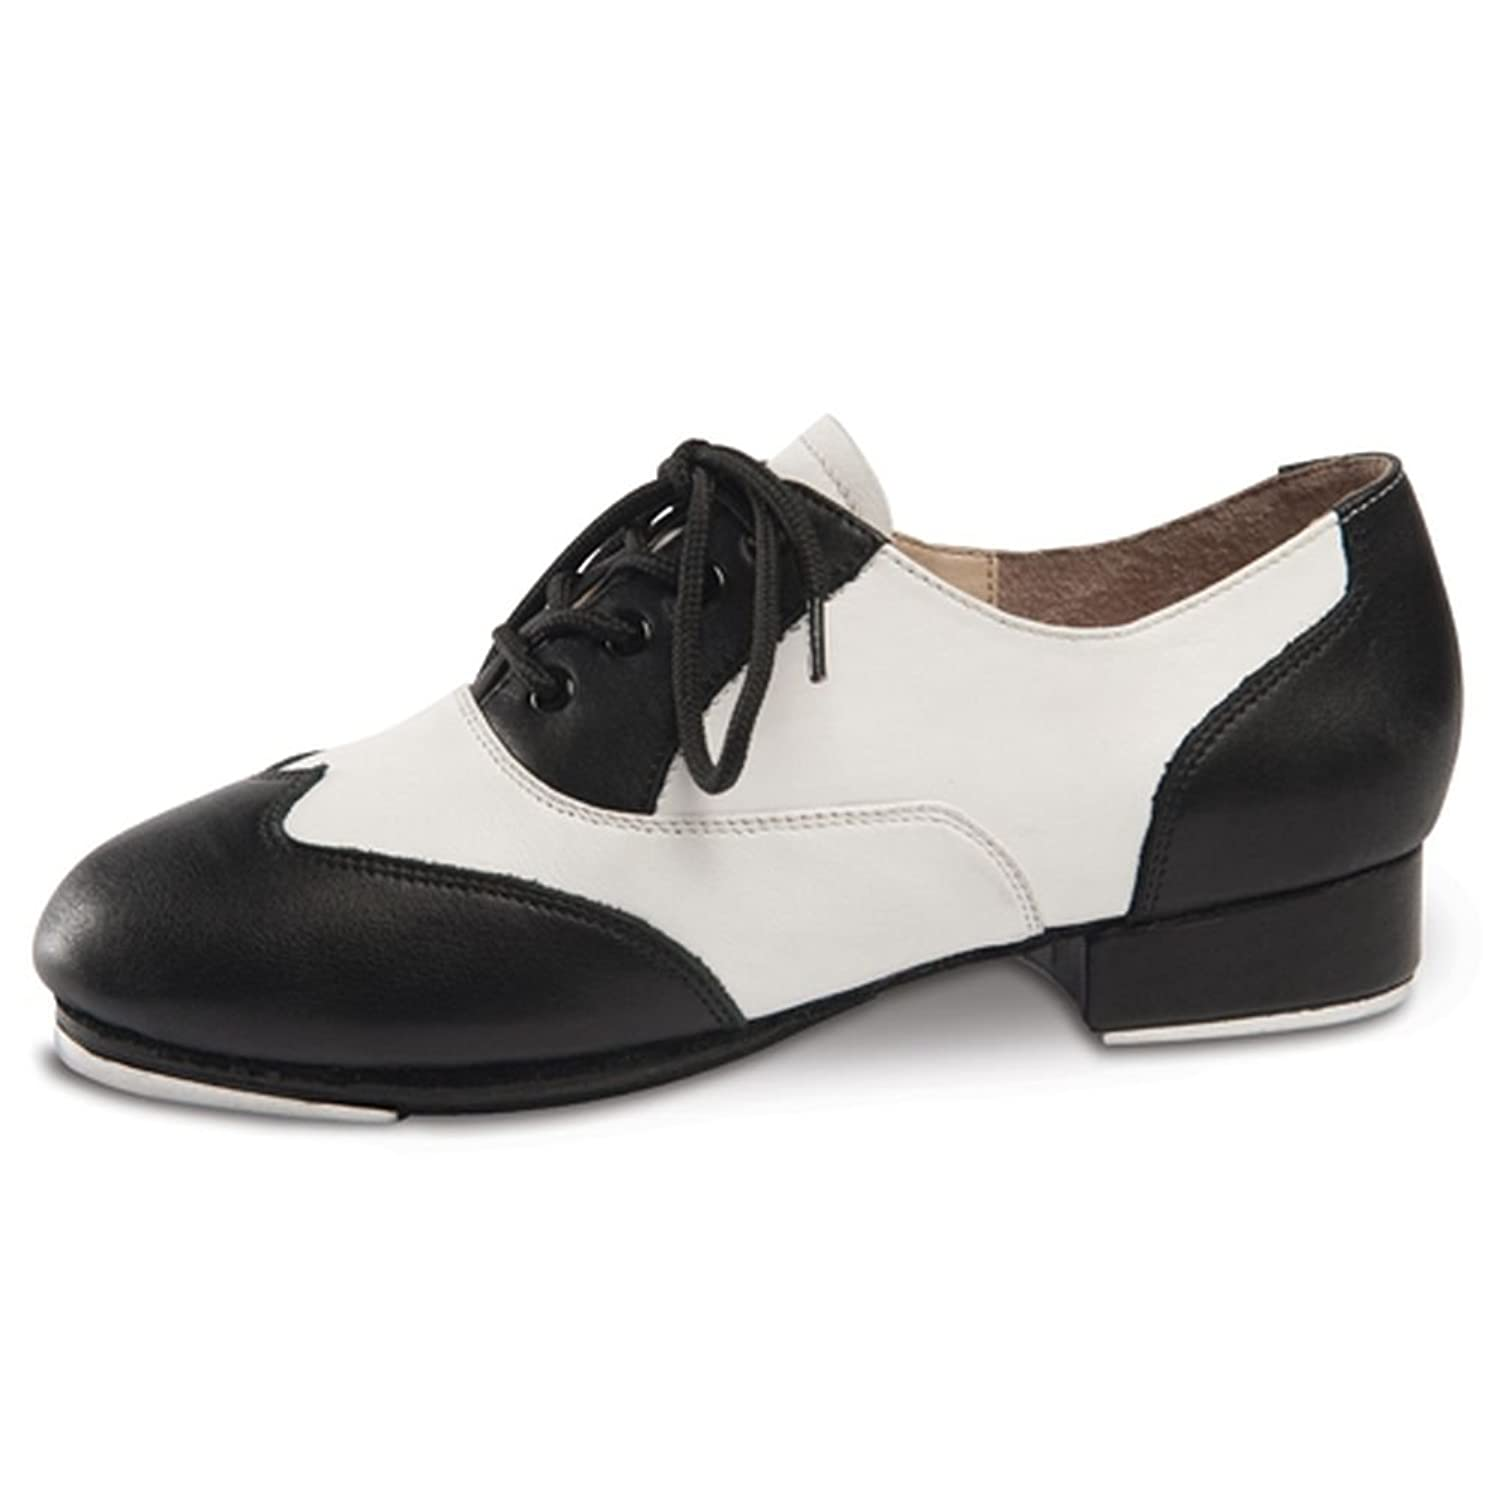 Vintage Dance Shoes- Where to Buy Them Danshuz Womens Black White Saddle Style Tap Dance Shoes Size 3-11 $119.95 AT vintagedancer.com